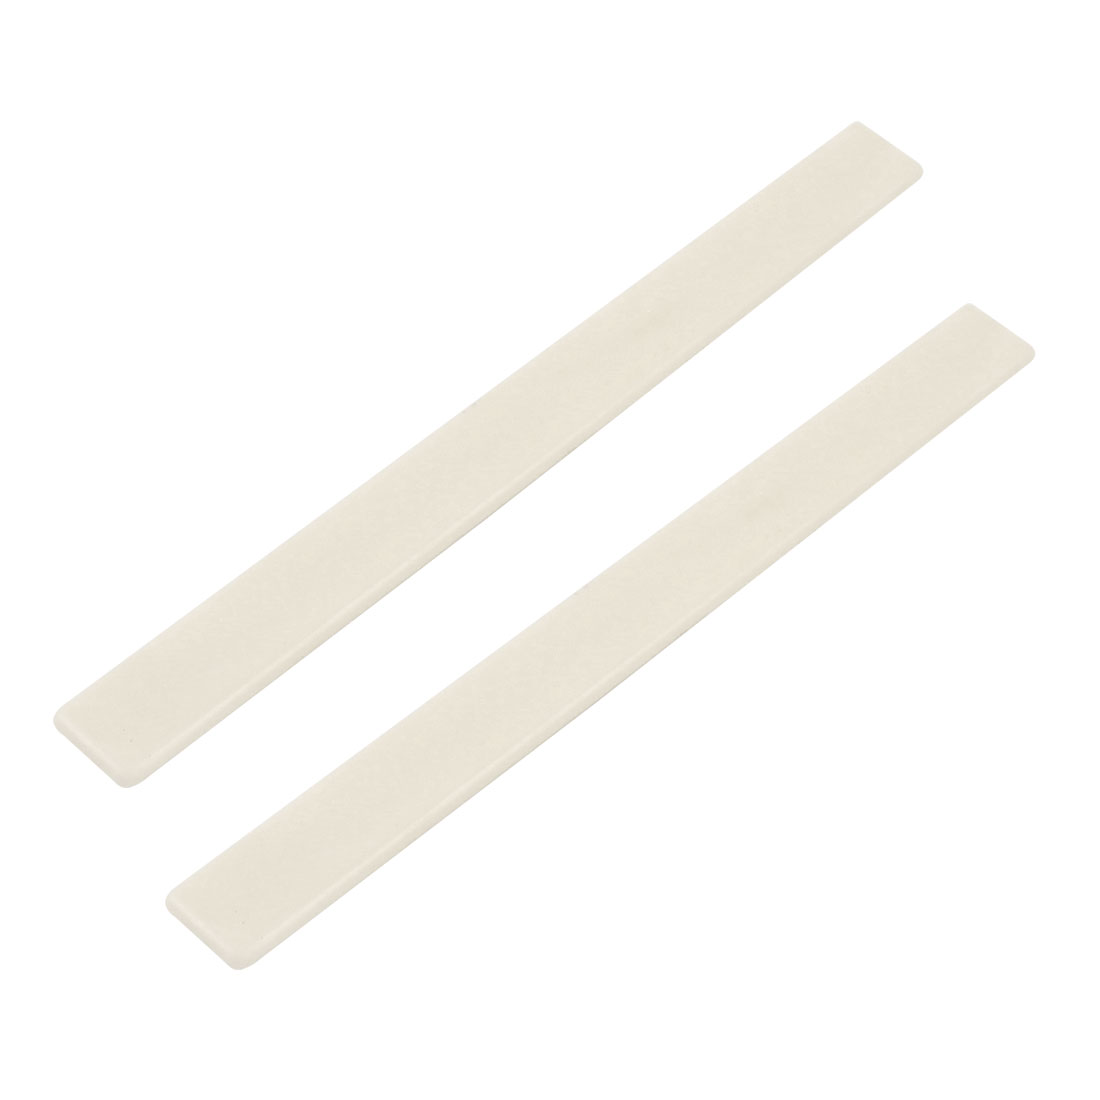 Music Instrument Parts Guitar Bridge Saddle Nut Ivory Color 2 Pcs